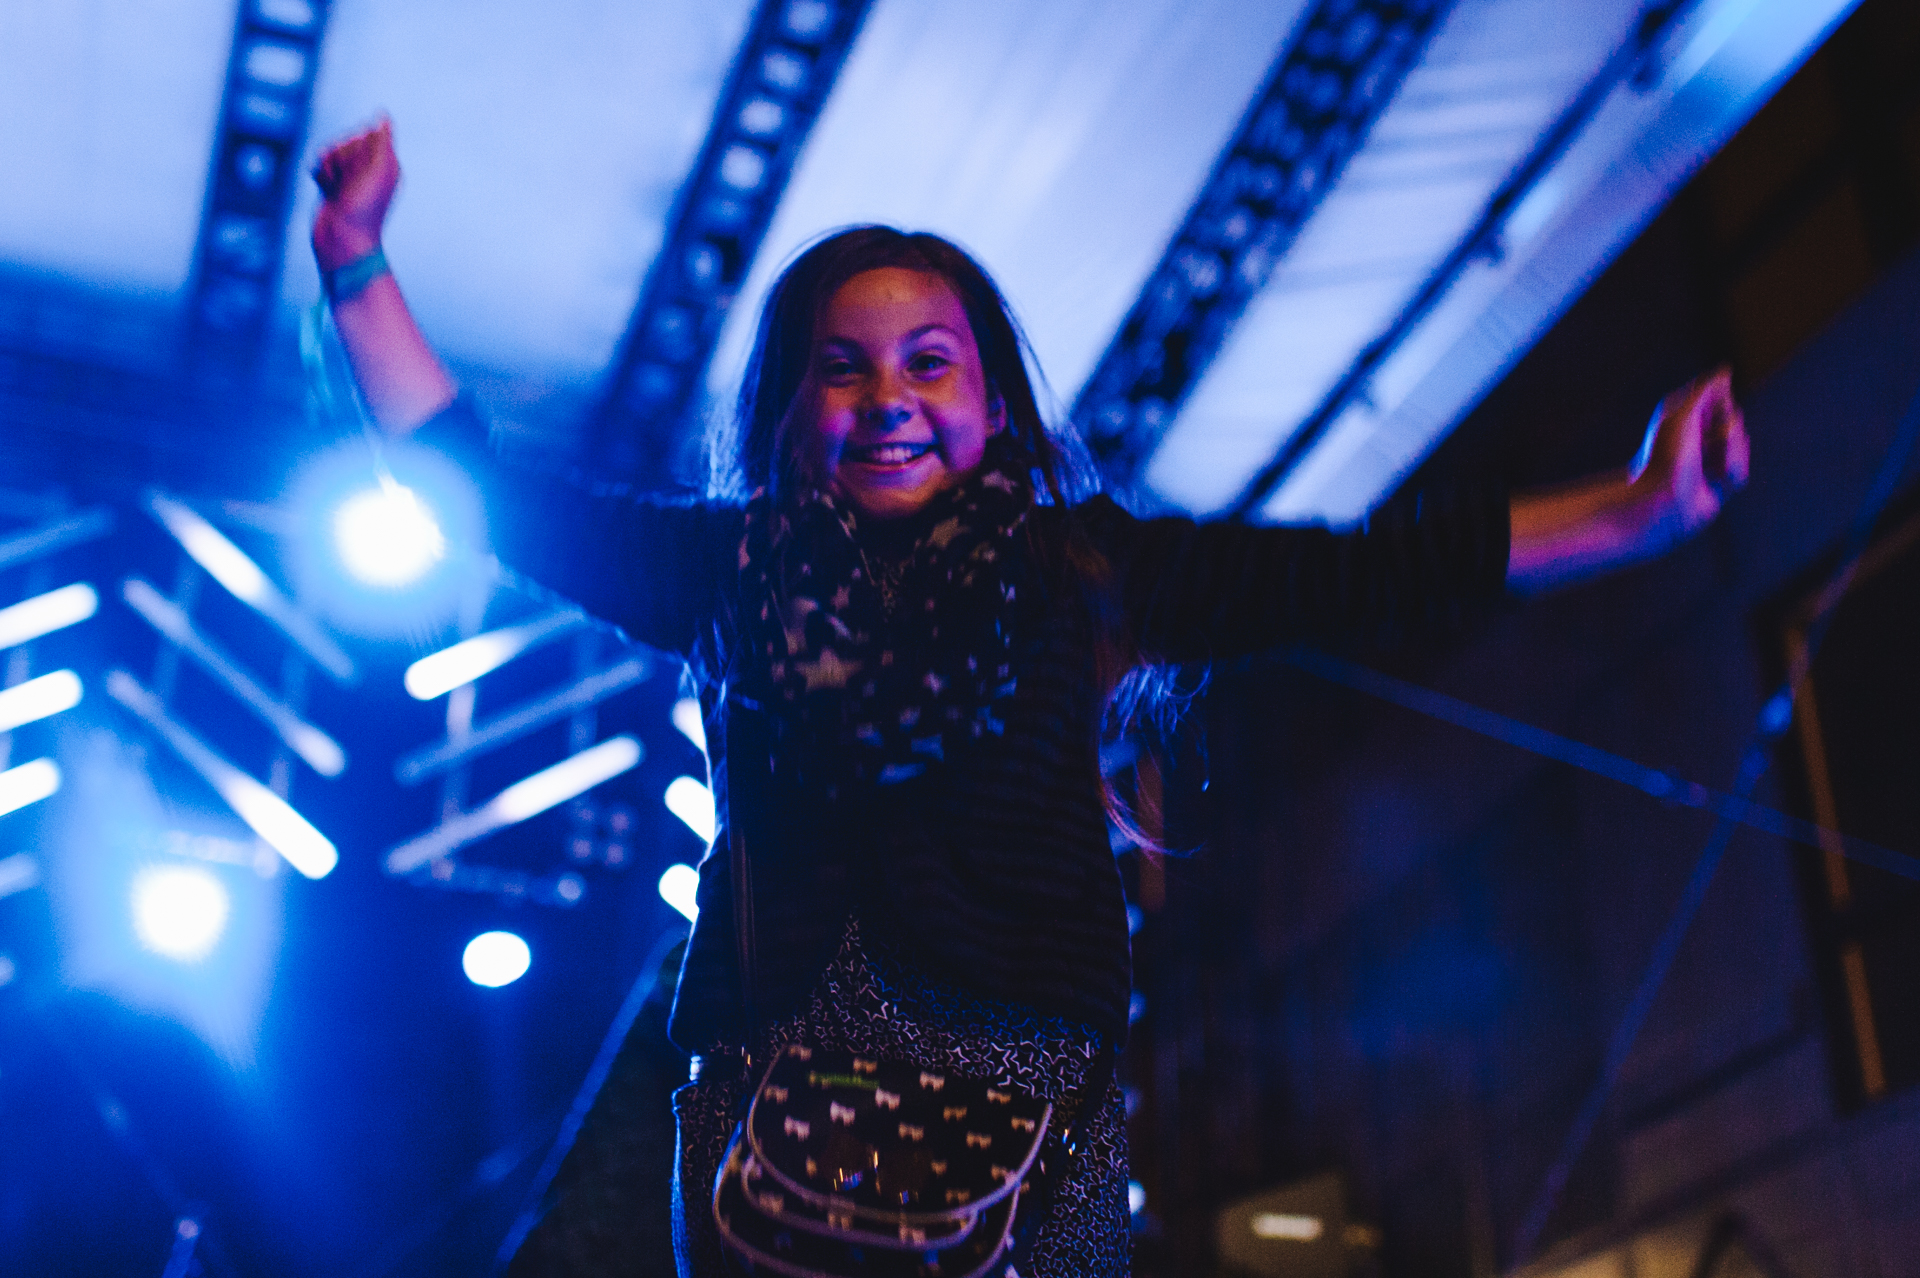 This little girl was lifted up onto the speaker at the end of Head Wound City's set to jump and dance